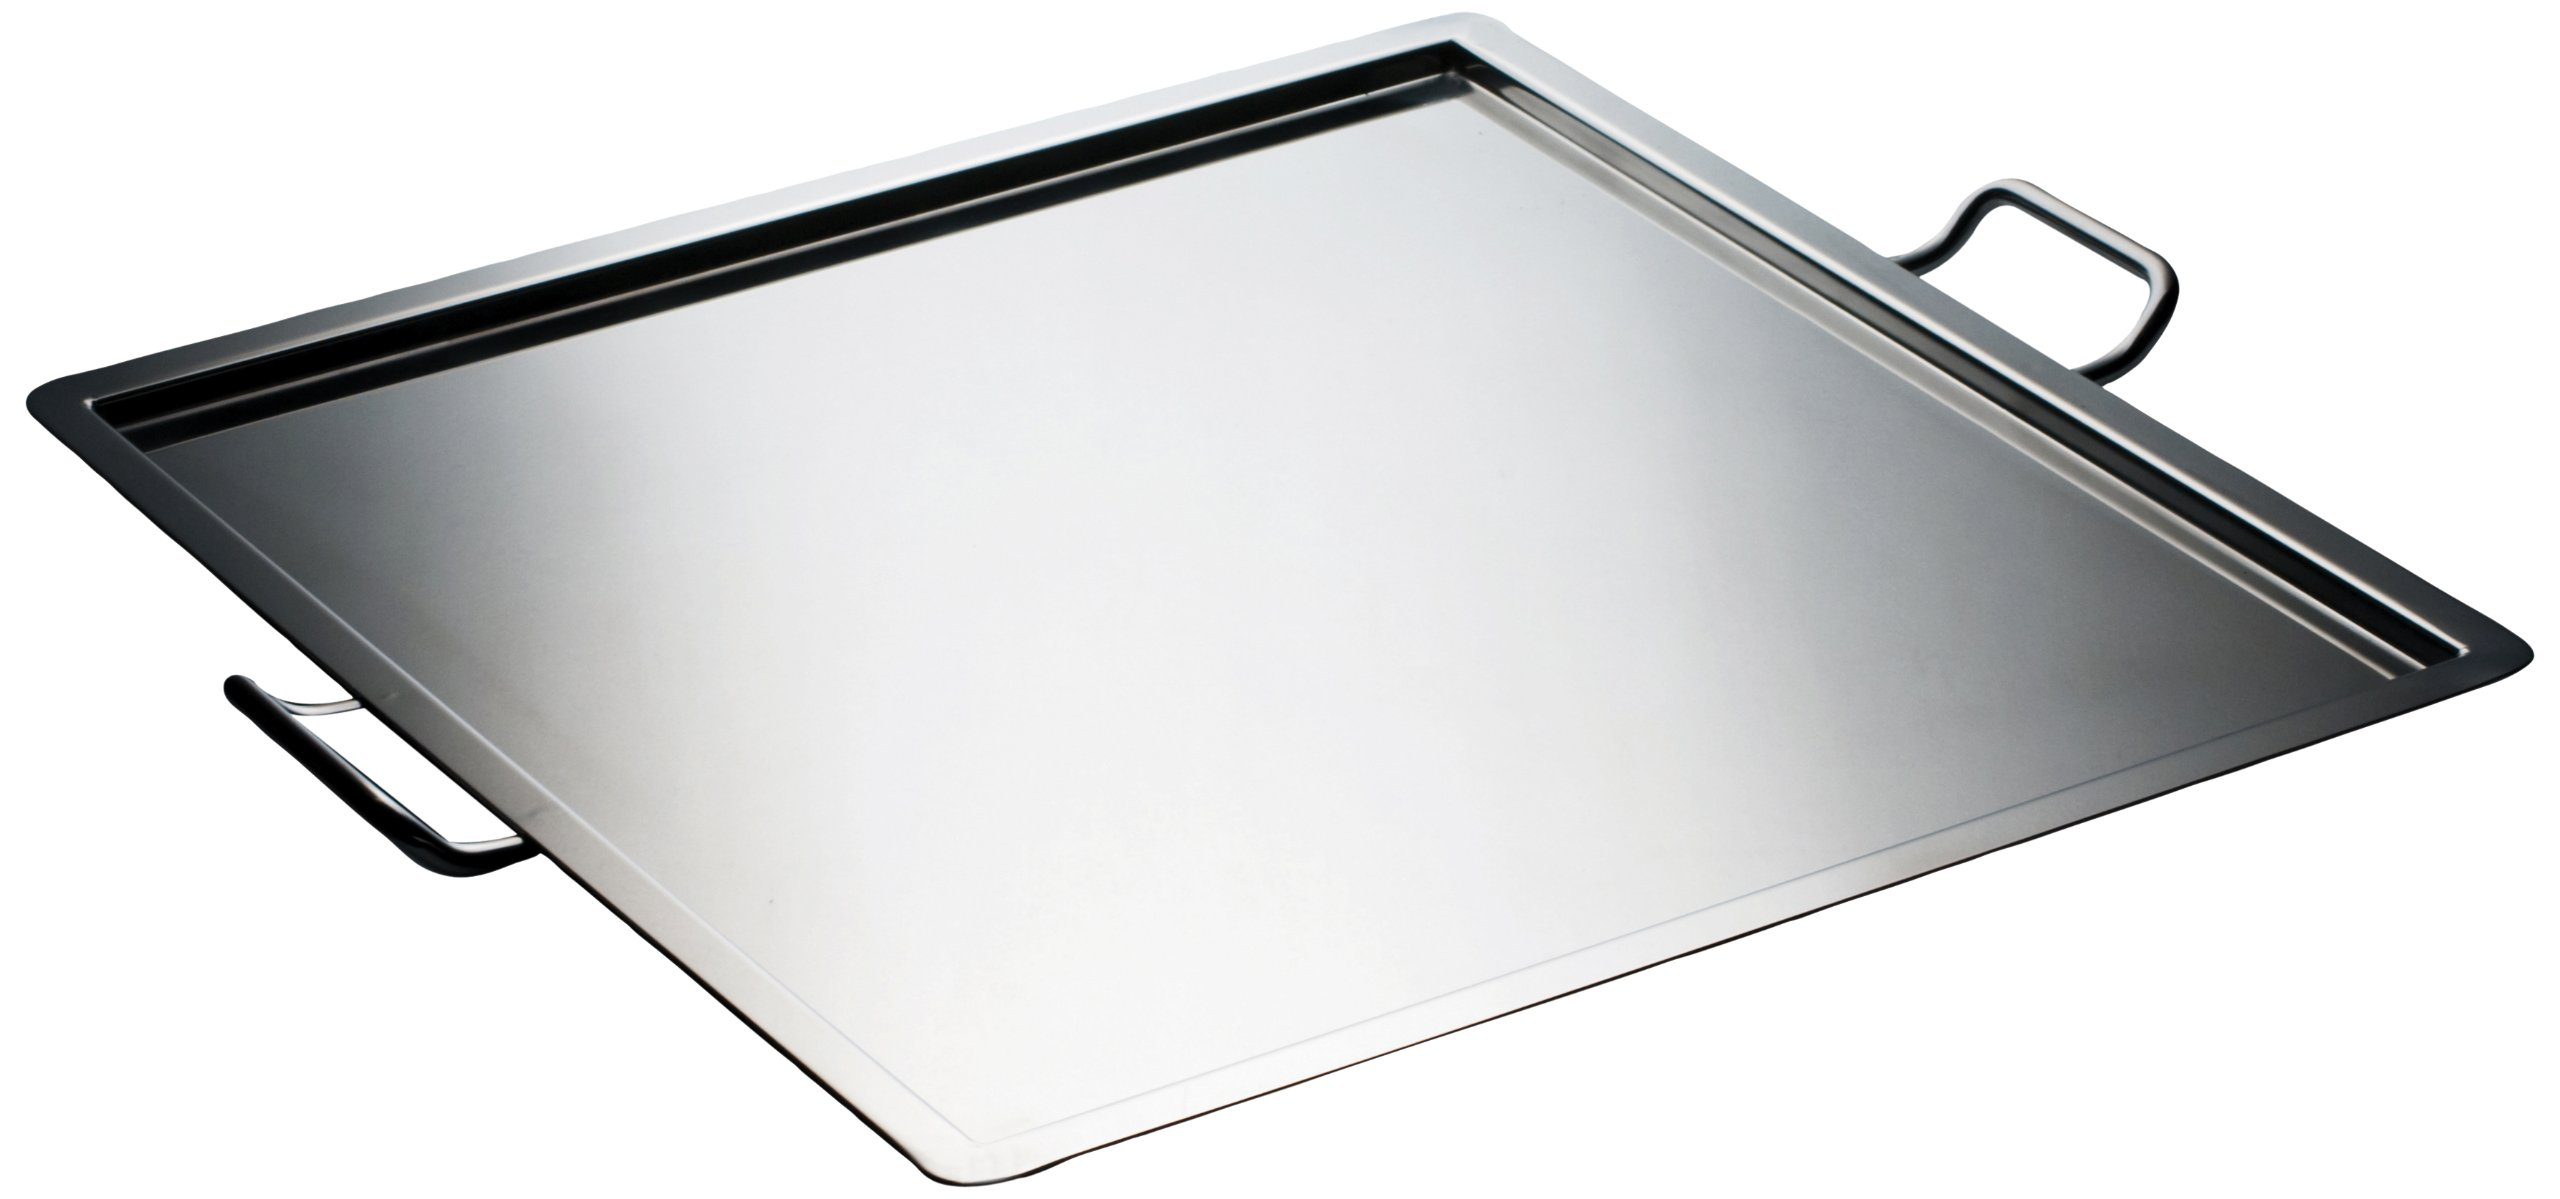 Mepra Novecento Square Tray with Handles